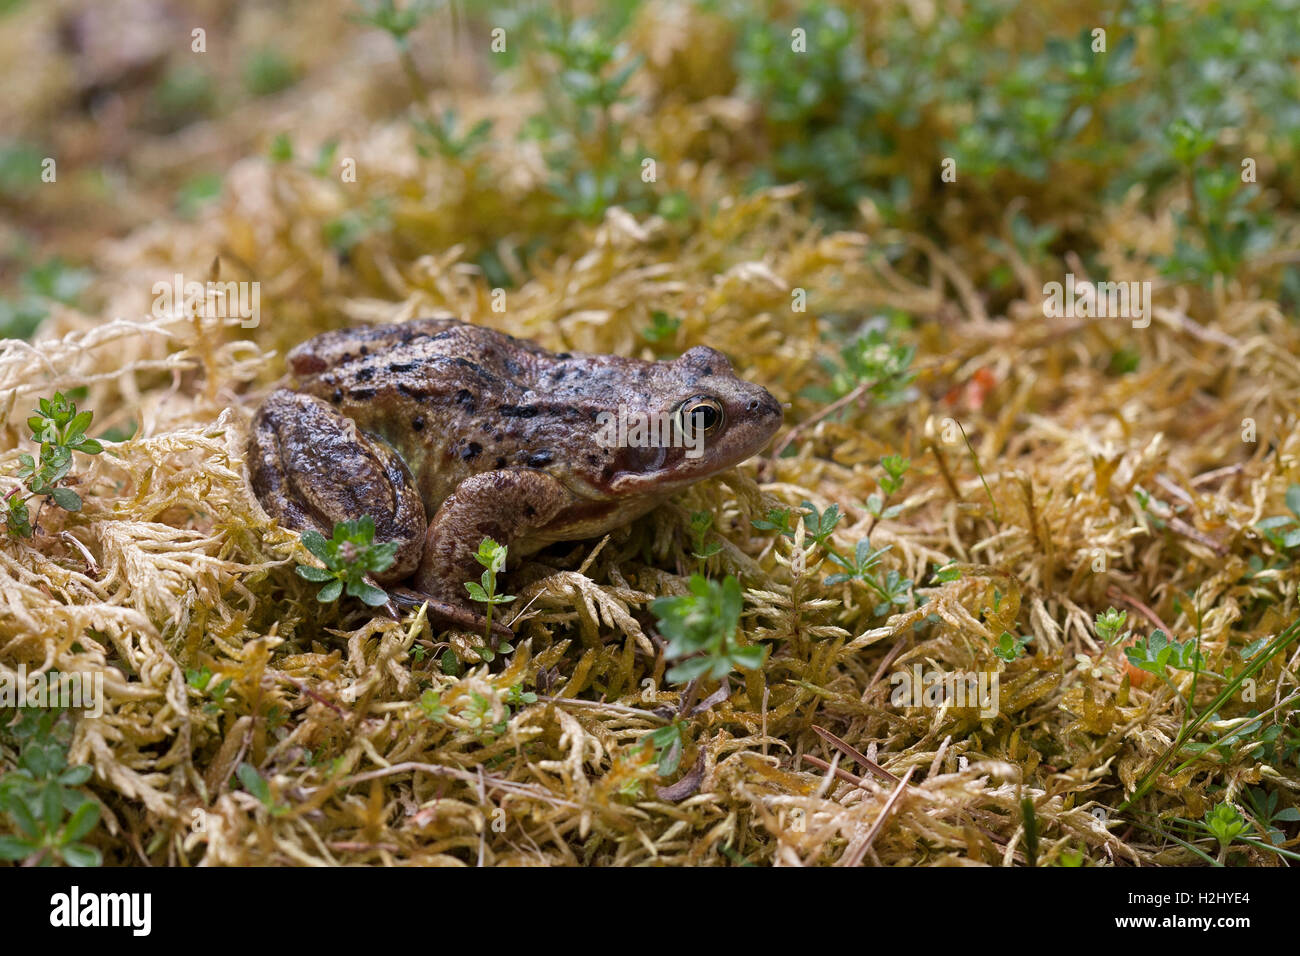 Common Frog, Rana temporaria,  Single adult resting on mossy bank. Linn of Dee, Scotland, UK. - Stock Image